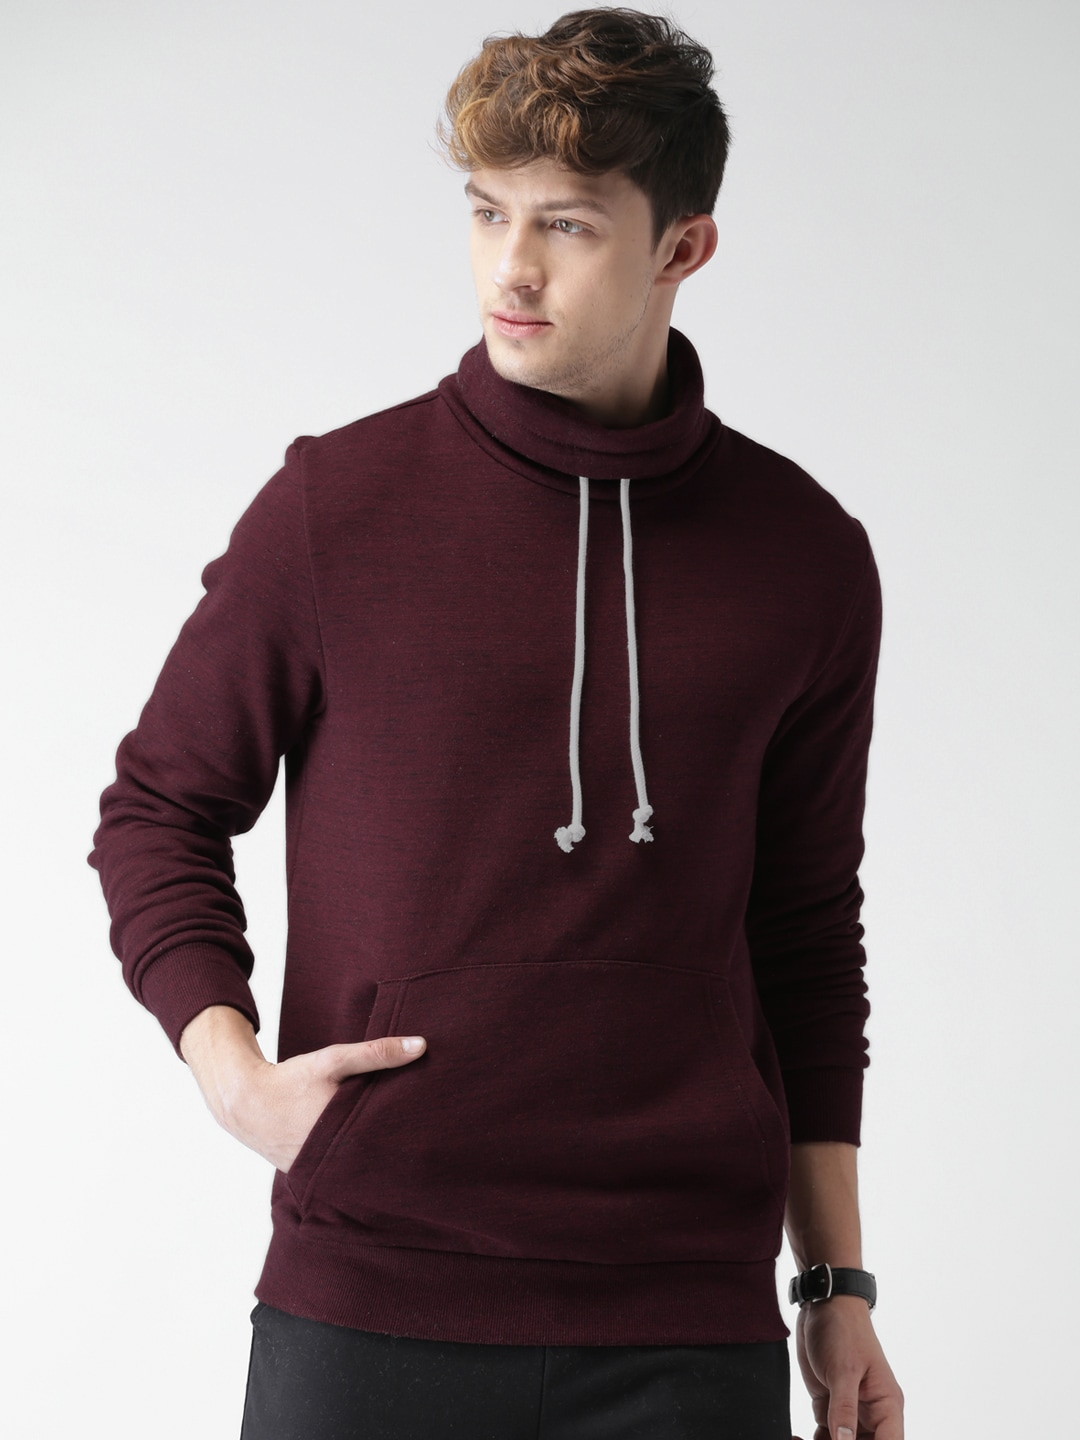 Buy FOREVER 21 Burgundy Solid Men's Sweatshirt At Best Price In India